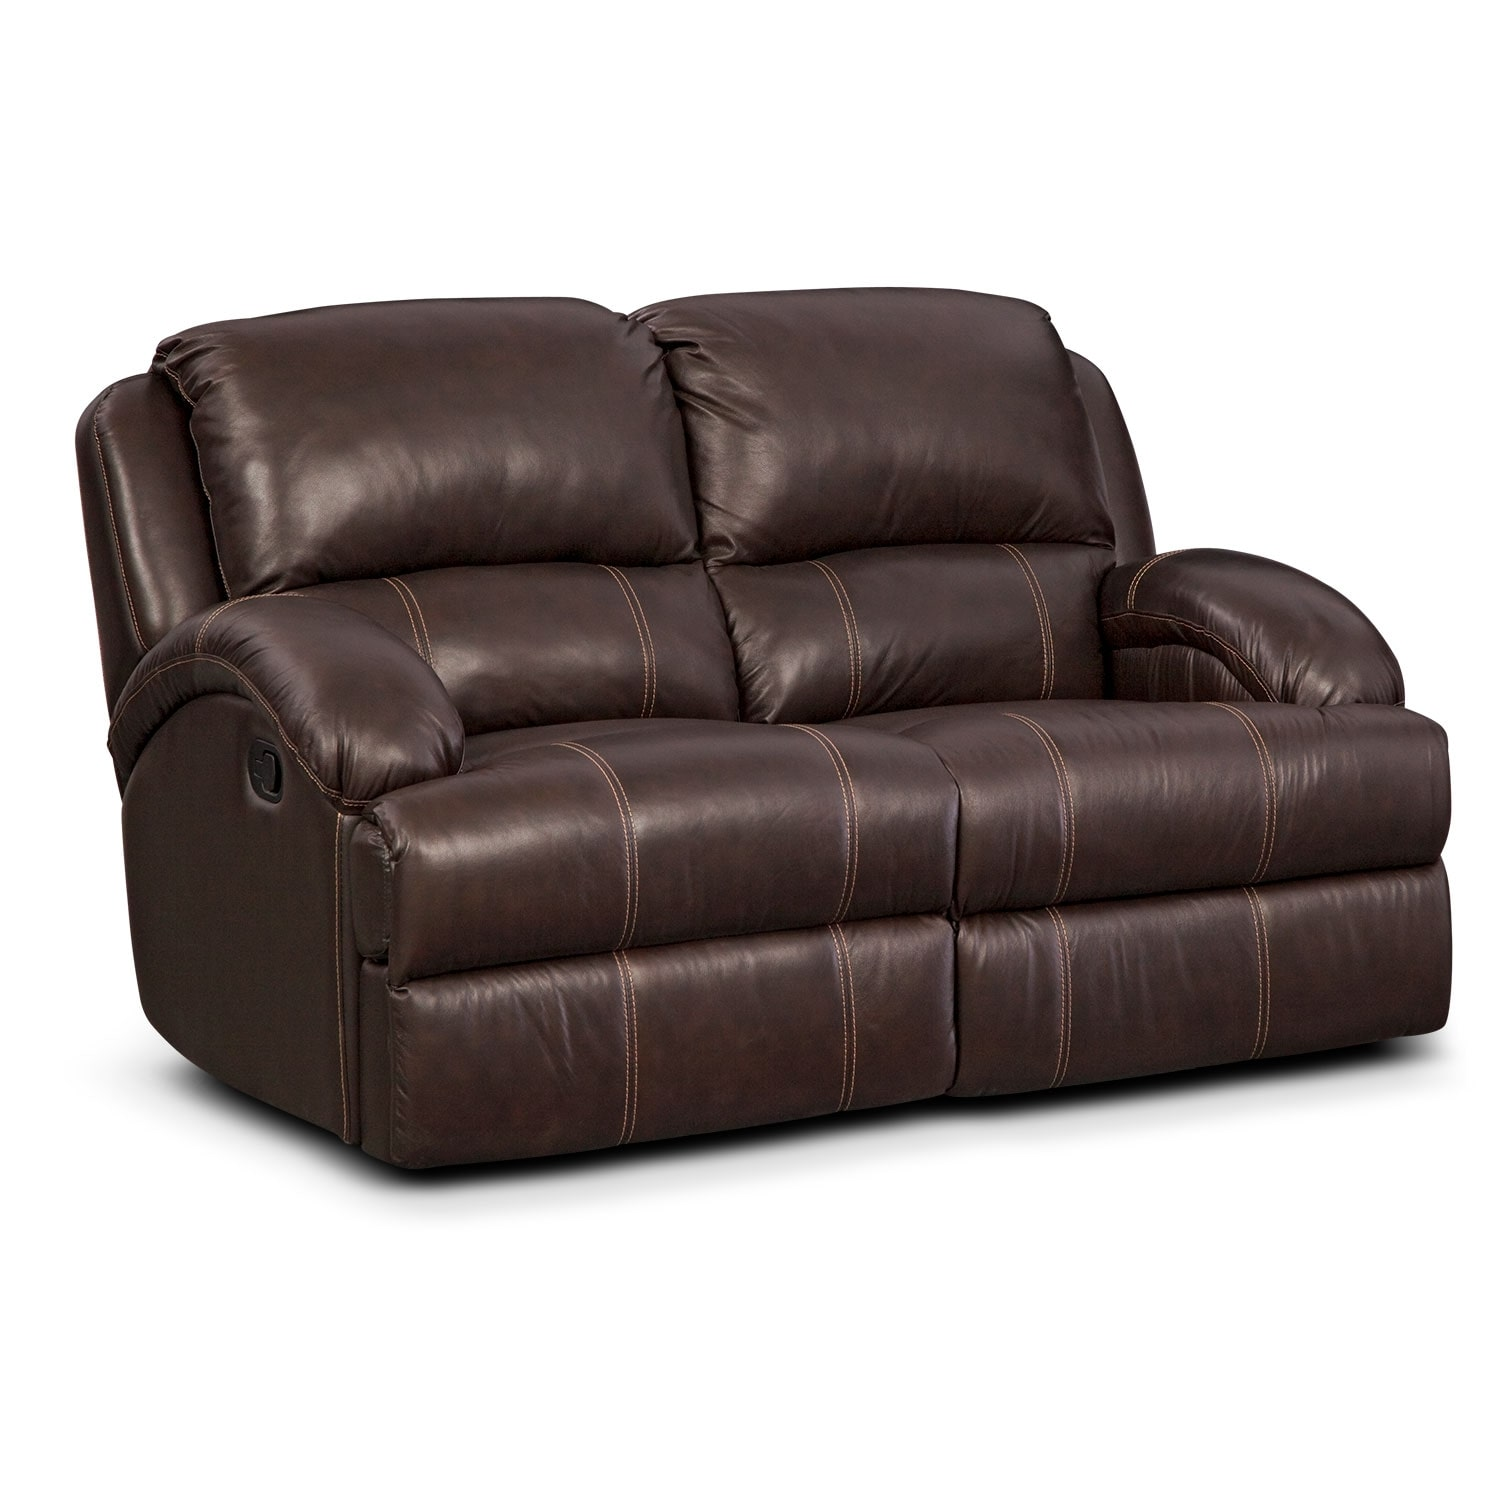 Nolan Dual Reclining Loveseat - Chocolate